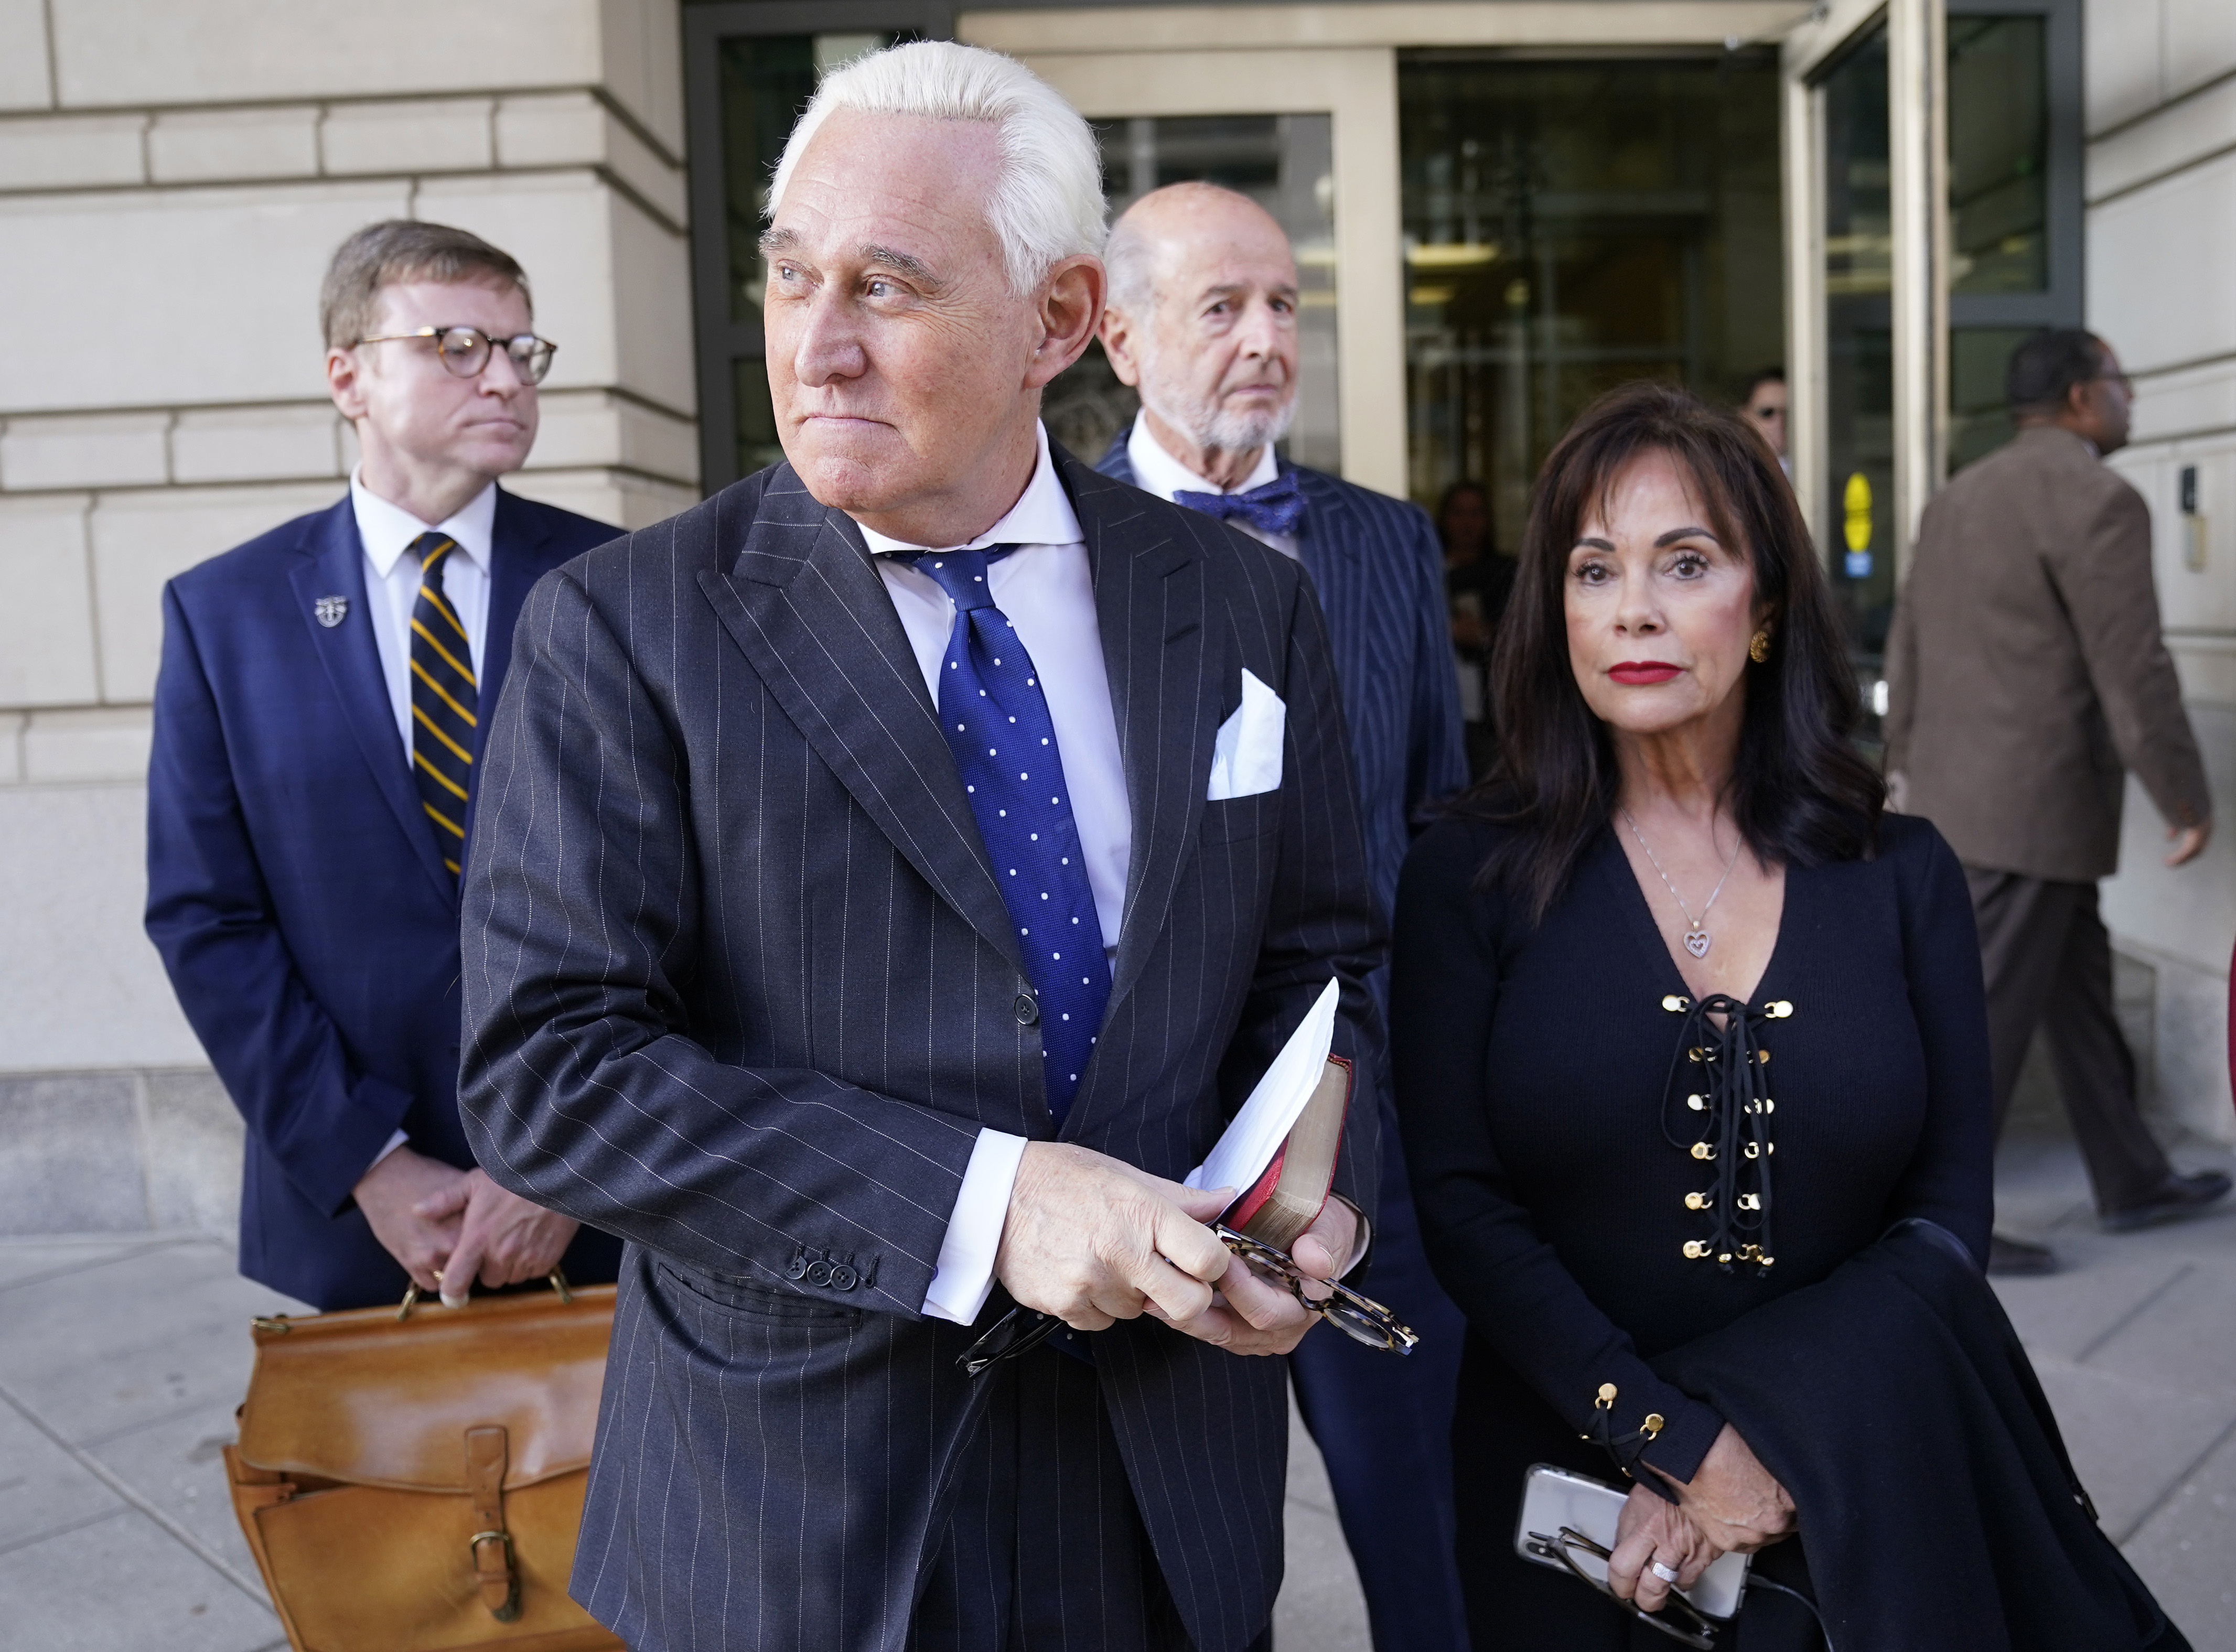 Former advisor to U.S. President Donald Trump, Roger Stone (2nd L), departs the E. Barrett Prettyman United States Courthouse with his wife Nydia (R) after being found guilty of obstructing a congressional investigation into Russia's interference in the 2016 election. (Win McNamee/Getty Images)